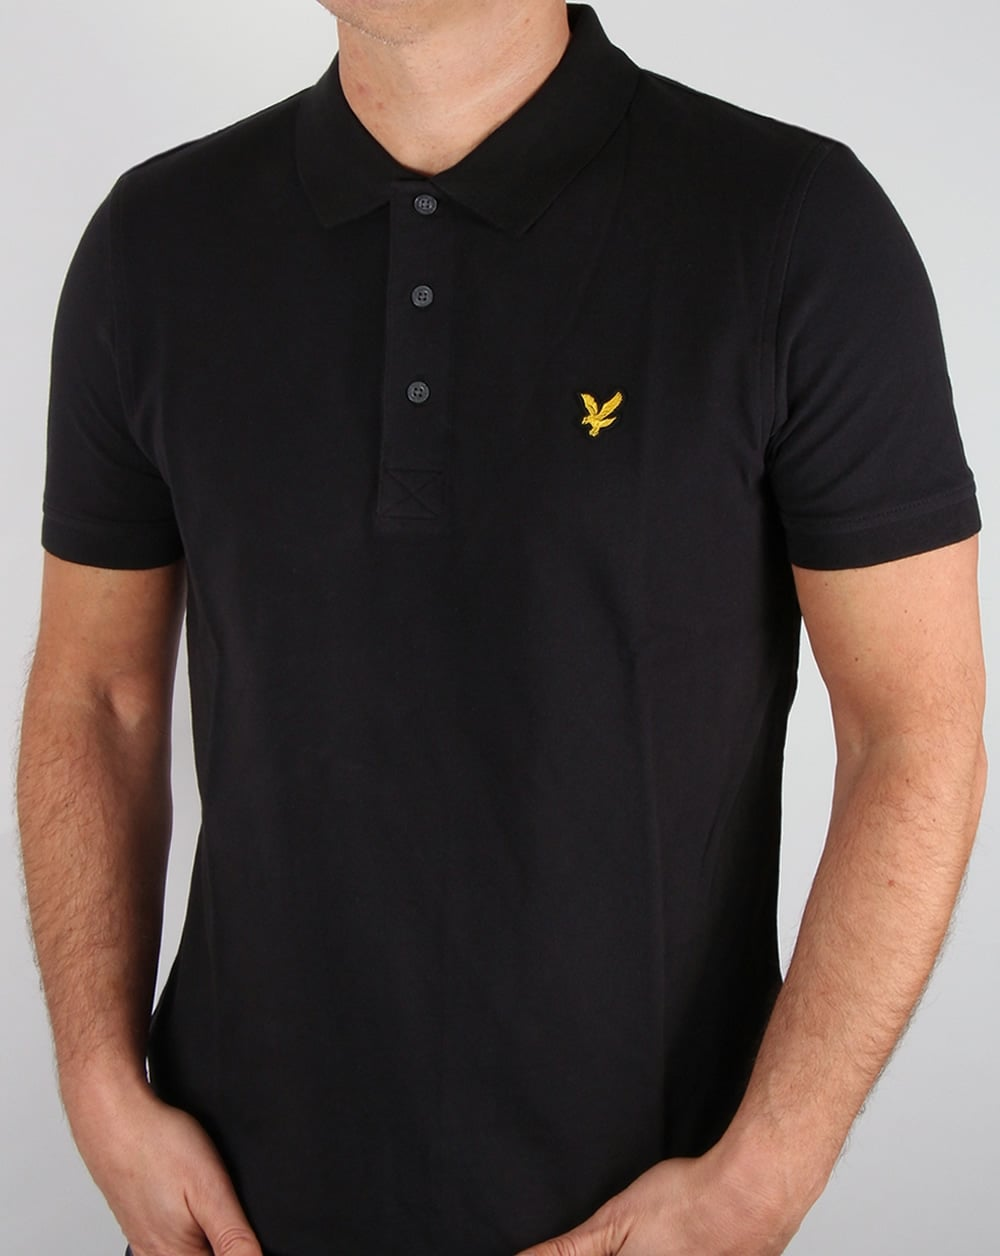 lyle and scott polo shirt black pique neck cotton mens. Black Bedroom Furniture Sets. Home Design Ideas